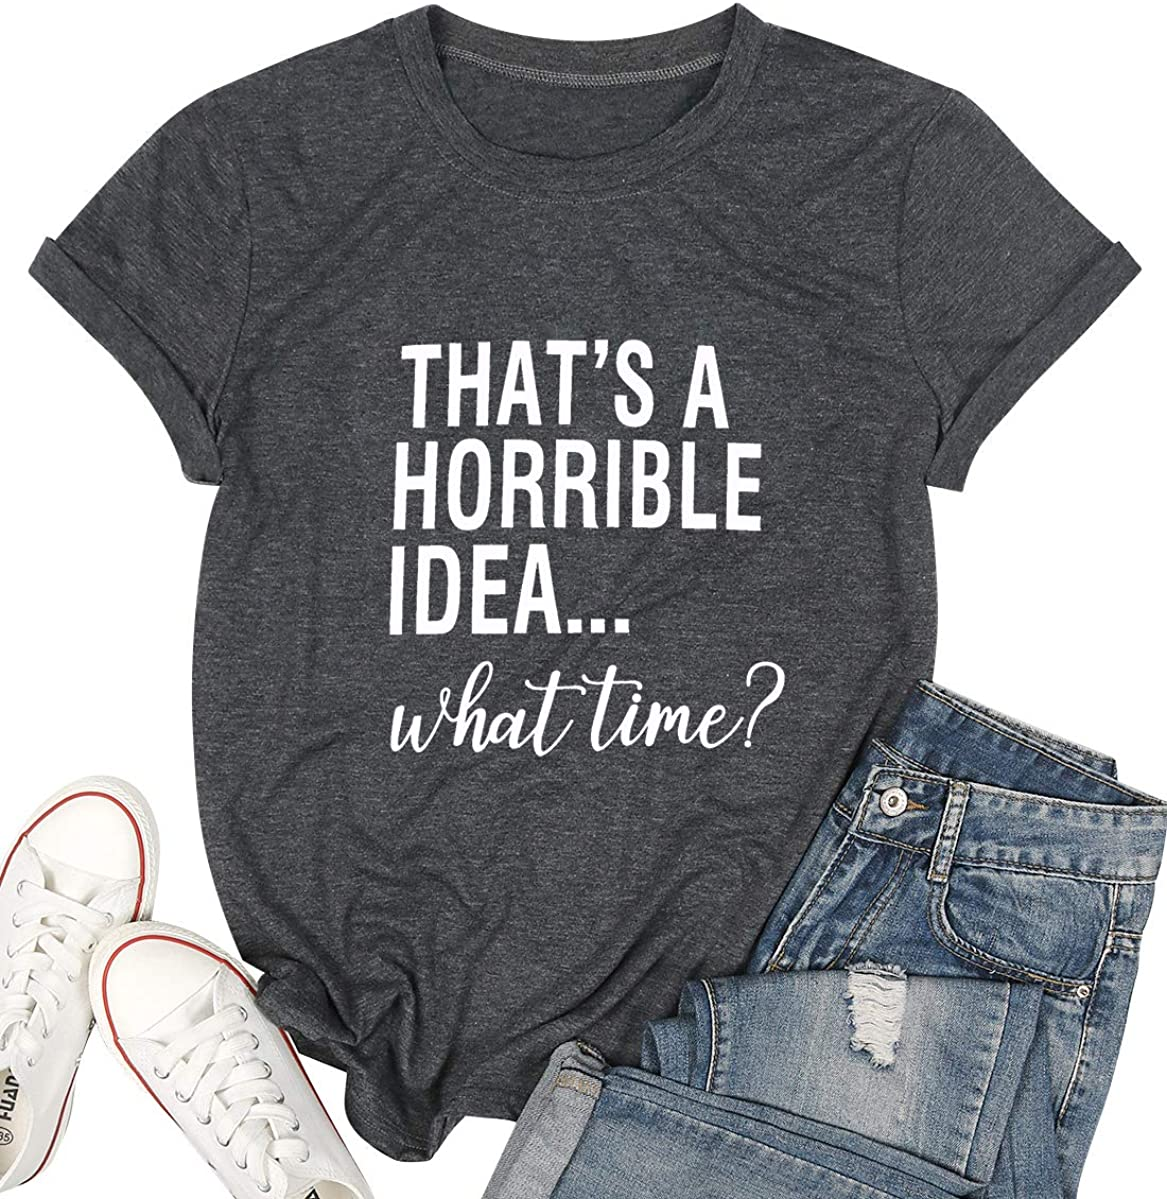 Thats A Horrible Idea What Time T Shirt Women Funny Drinking Shirt Cute Short Sleeve Graphic Tshirt Best Friends Shirt Top